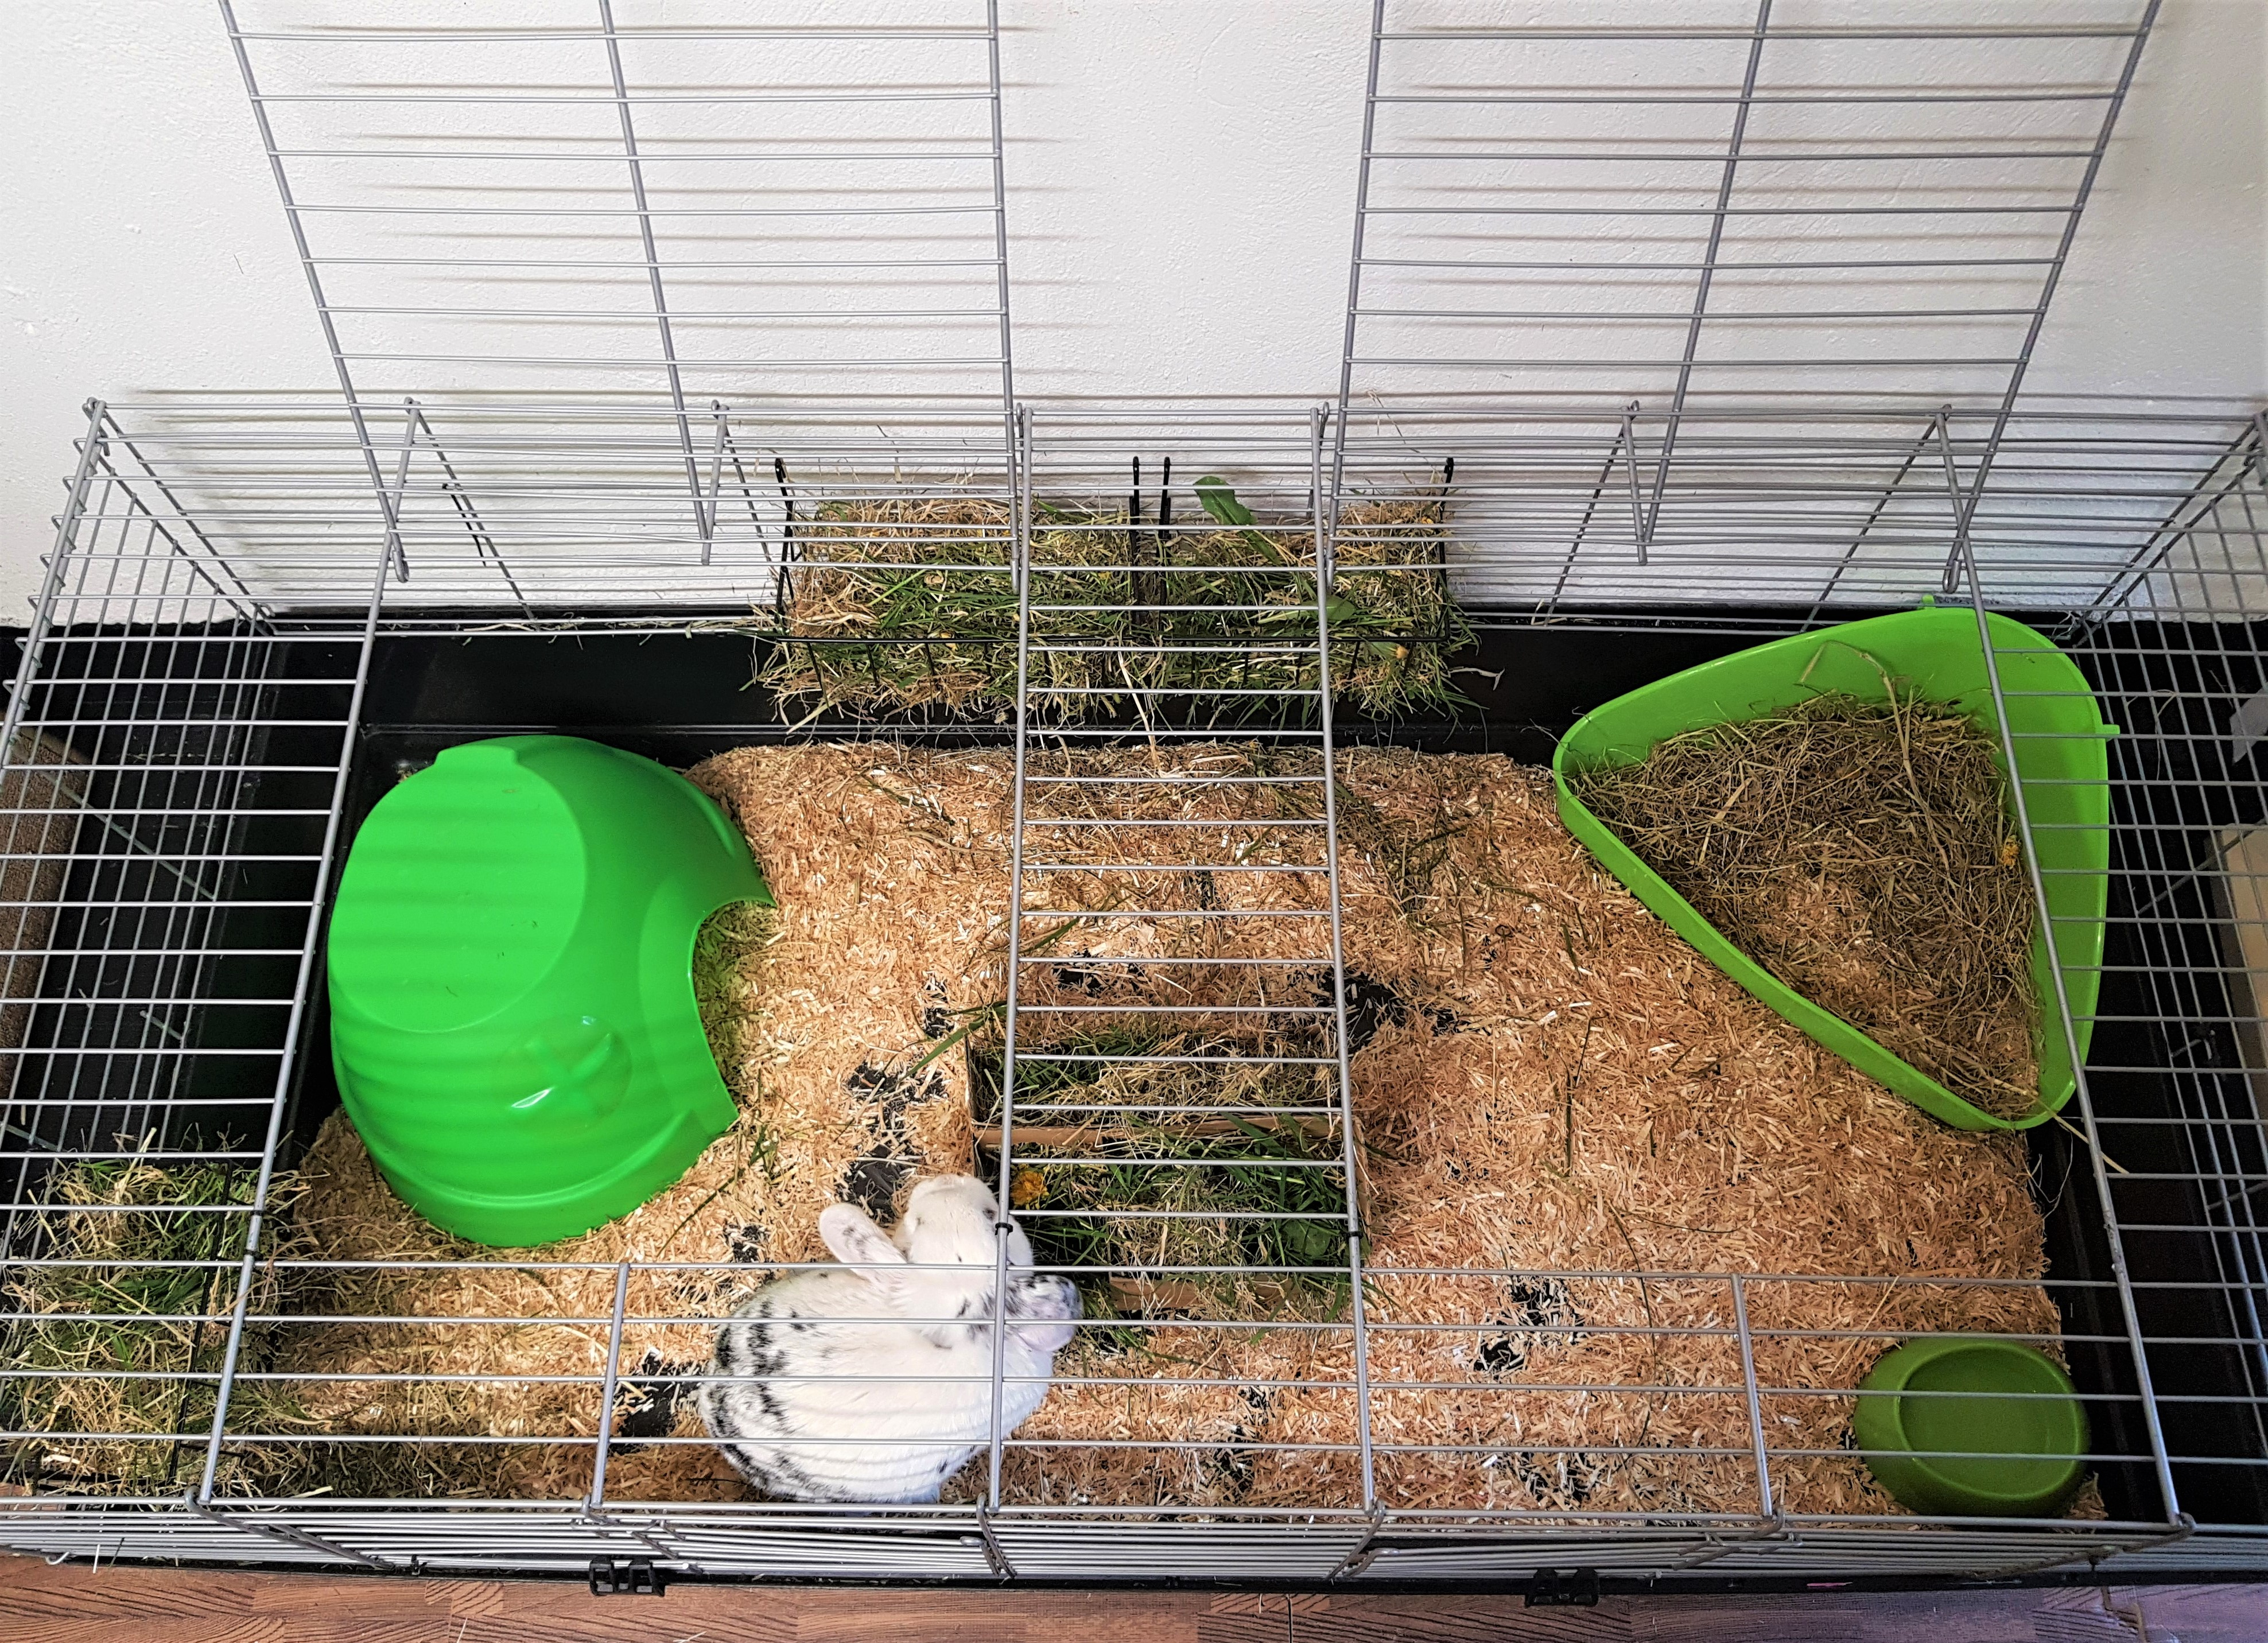 Rabbit indoor cages €8 per Day or €50 for 1 week